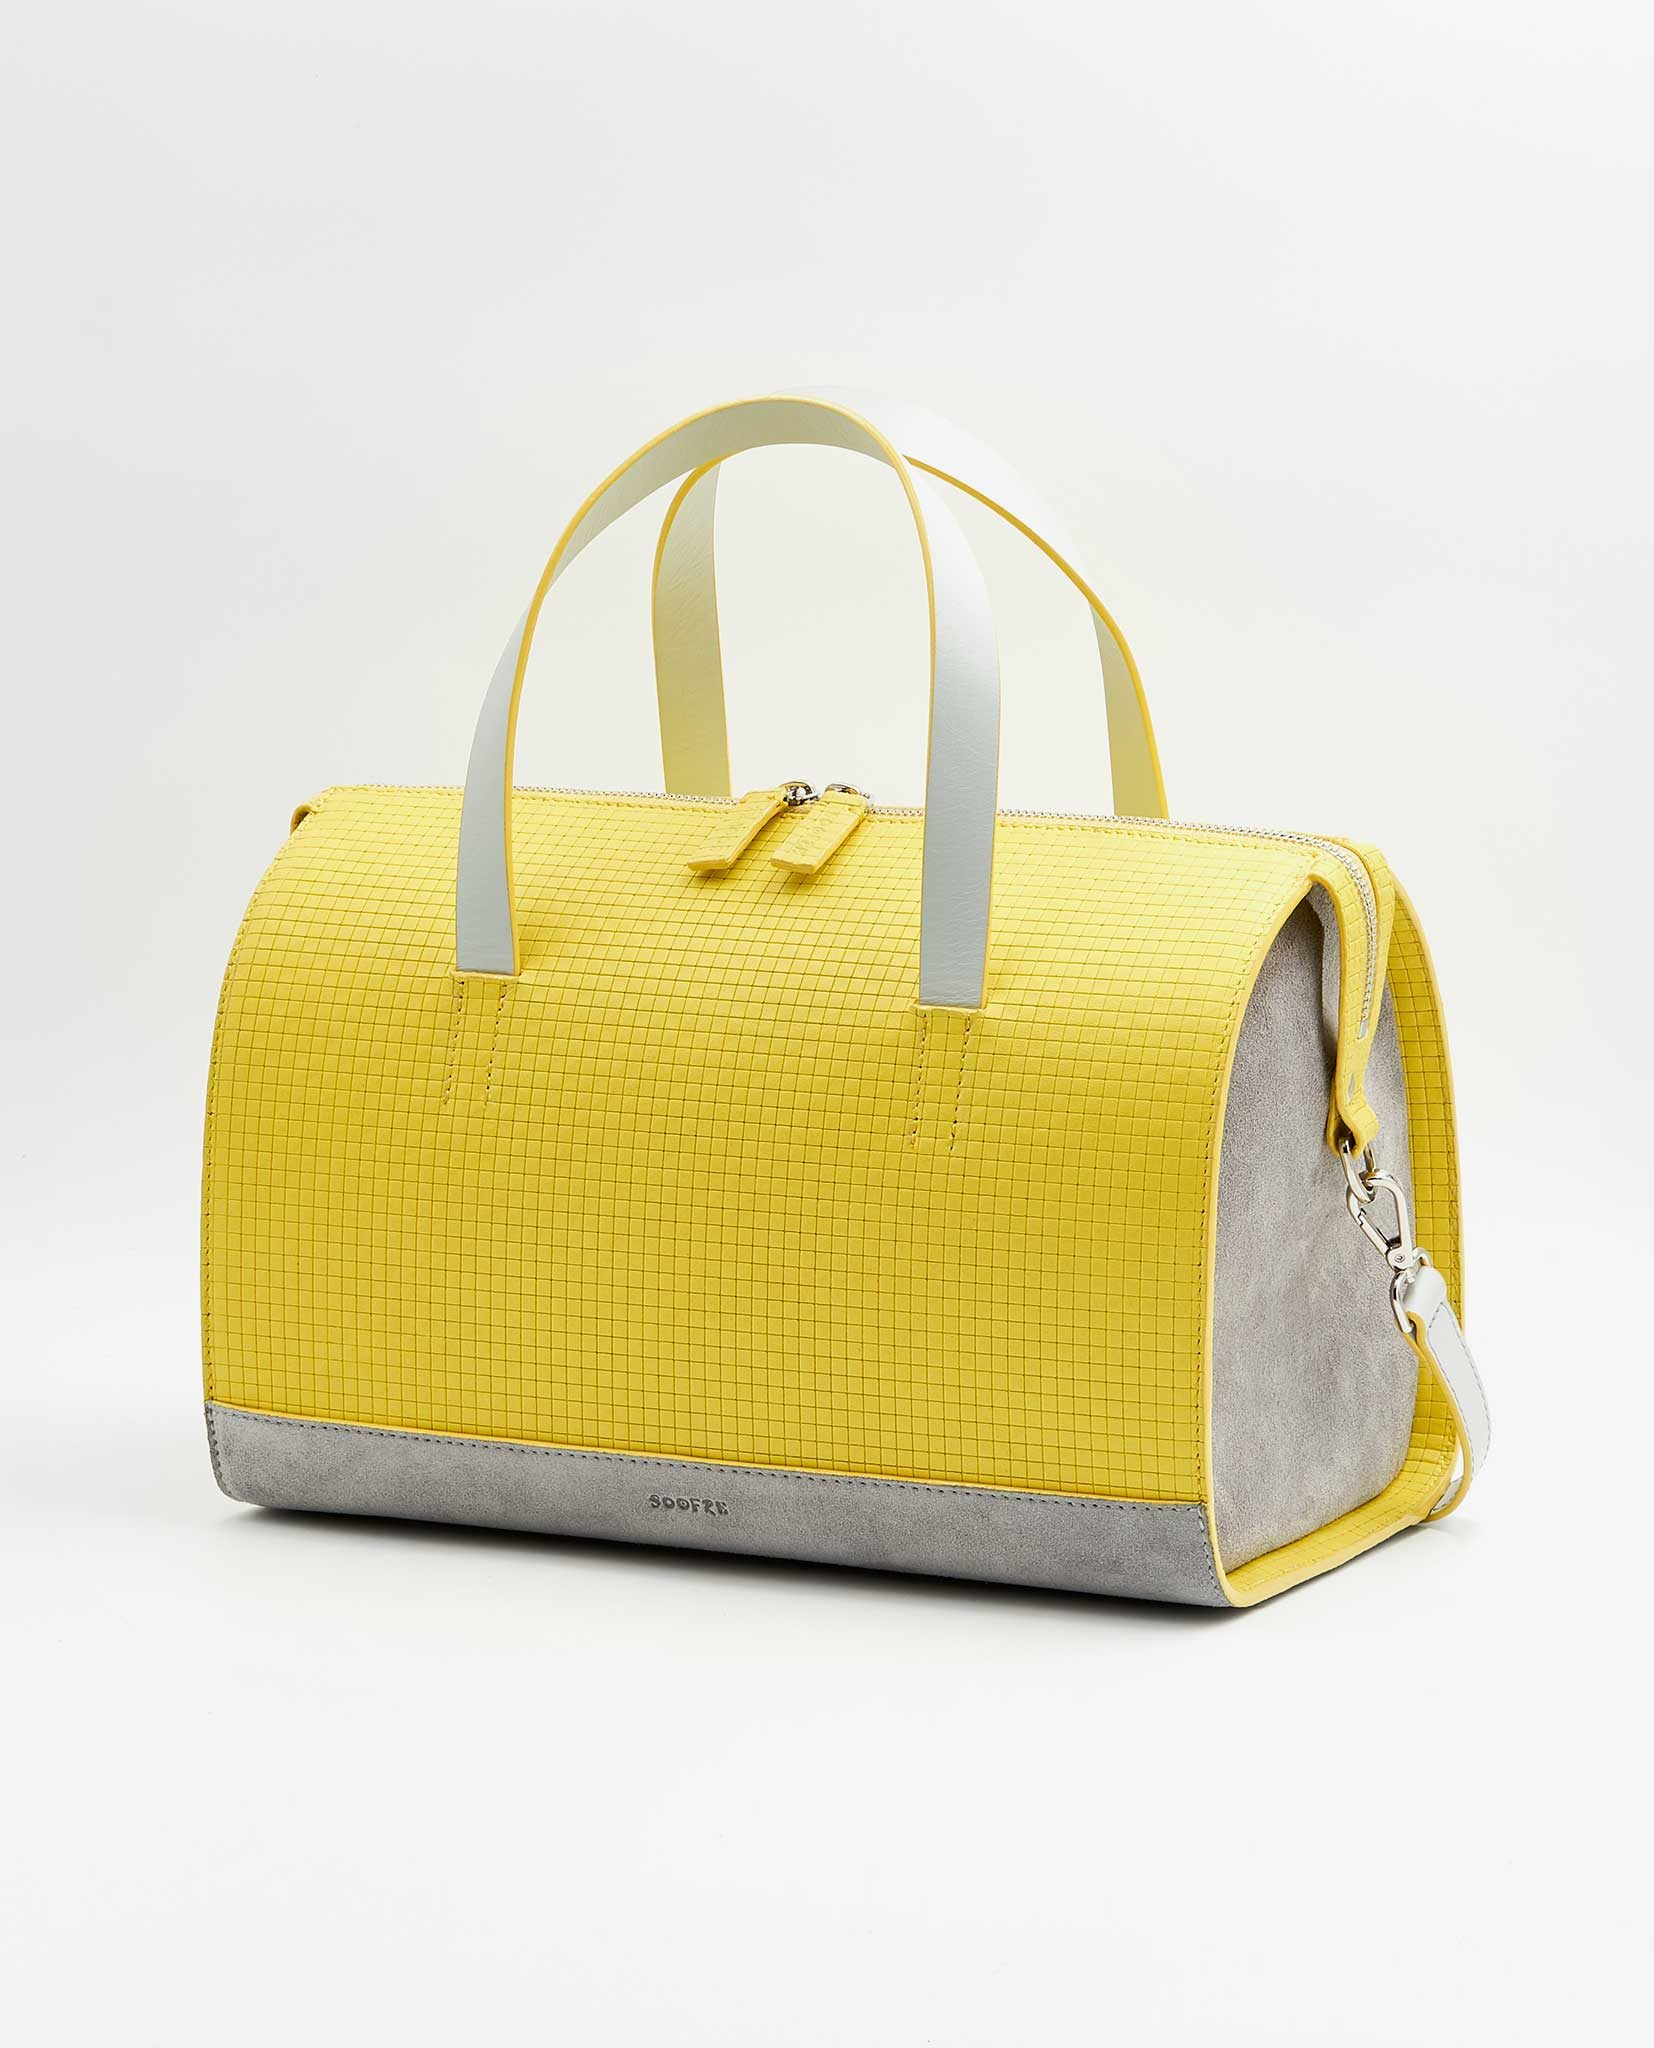 SOOFRE Berlin unique Bowler Bag squared yellow / dove grey